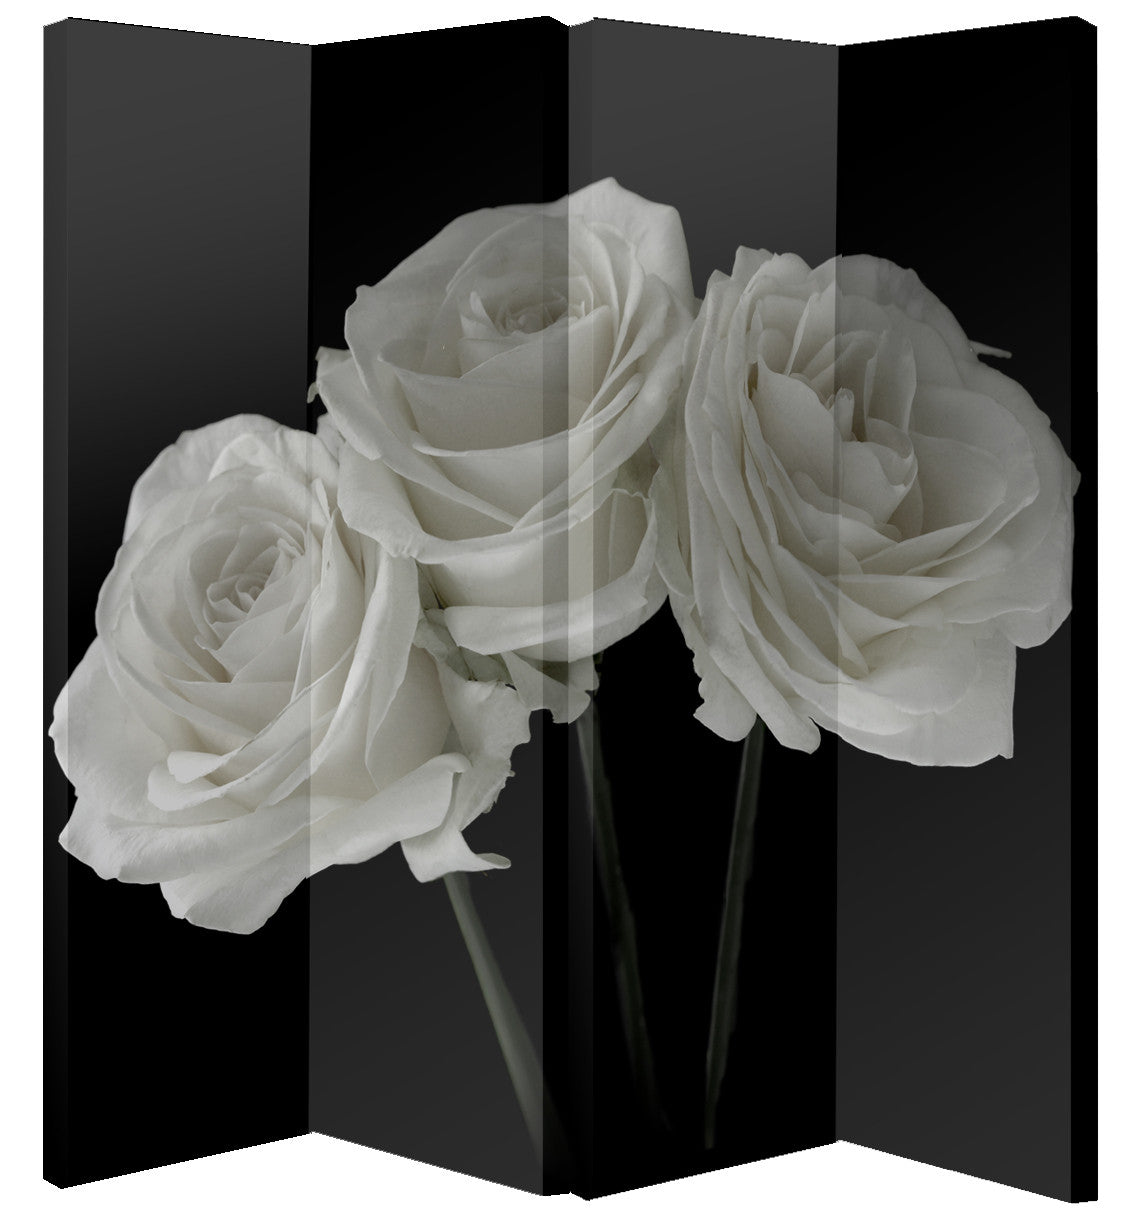 Black & White Rose Room Divider Screen